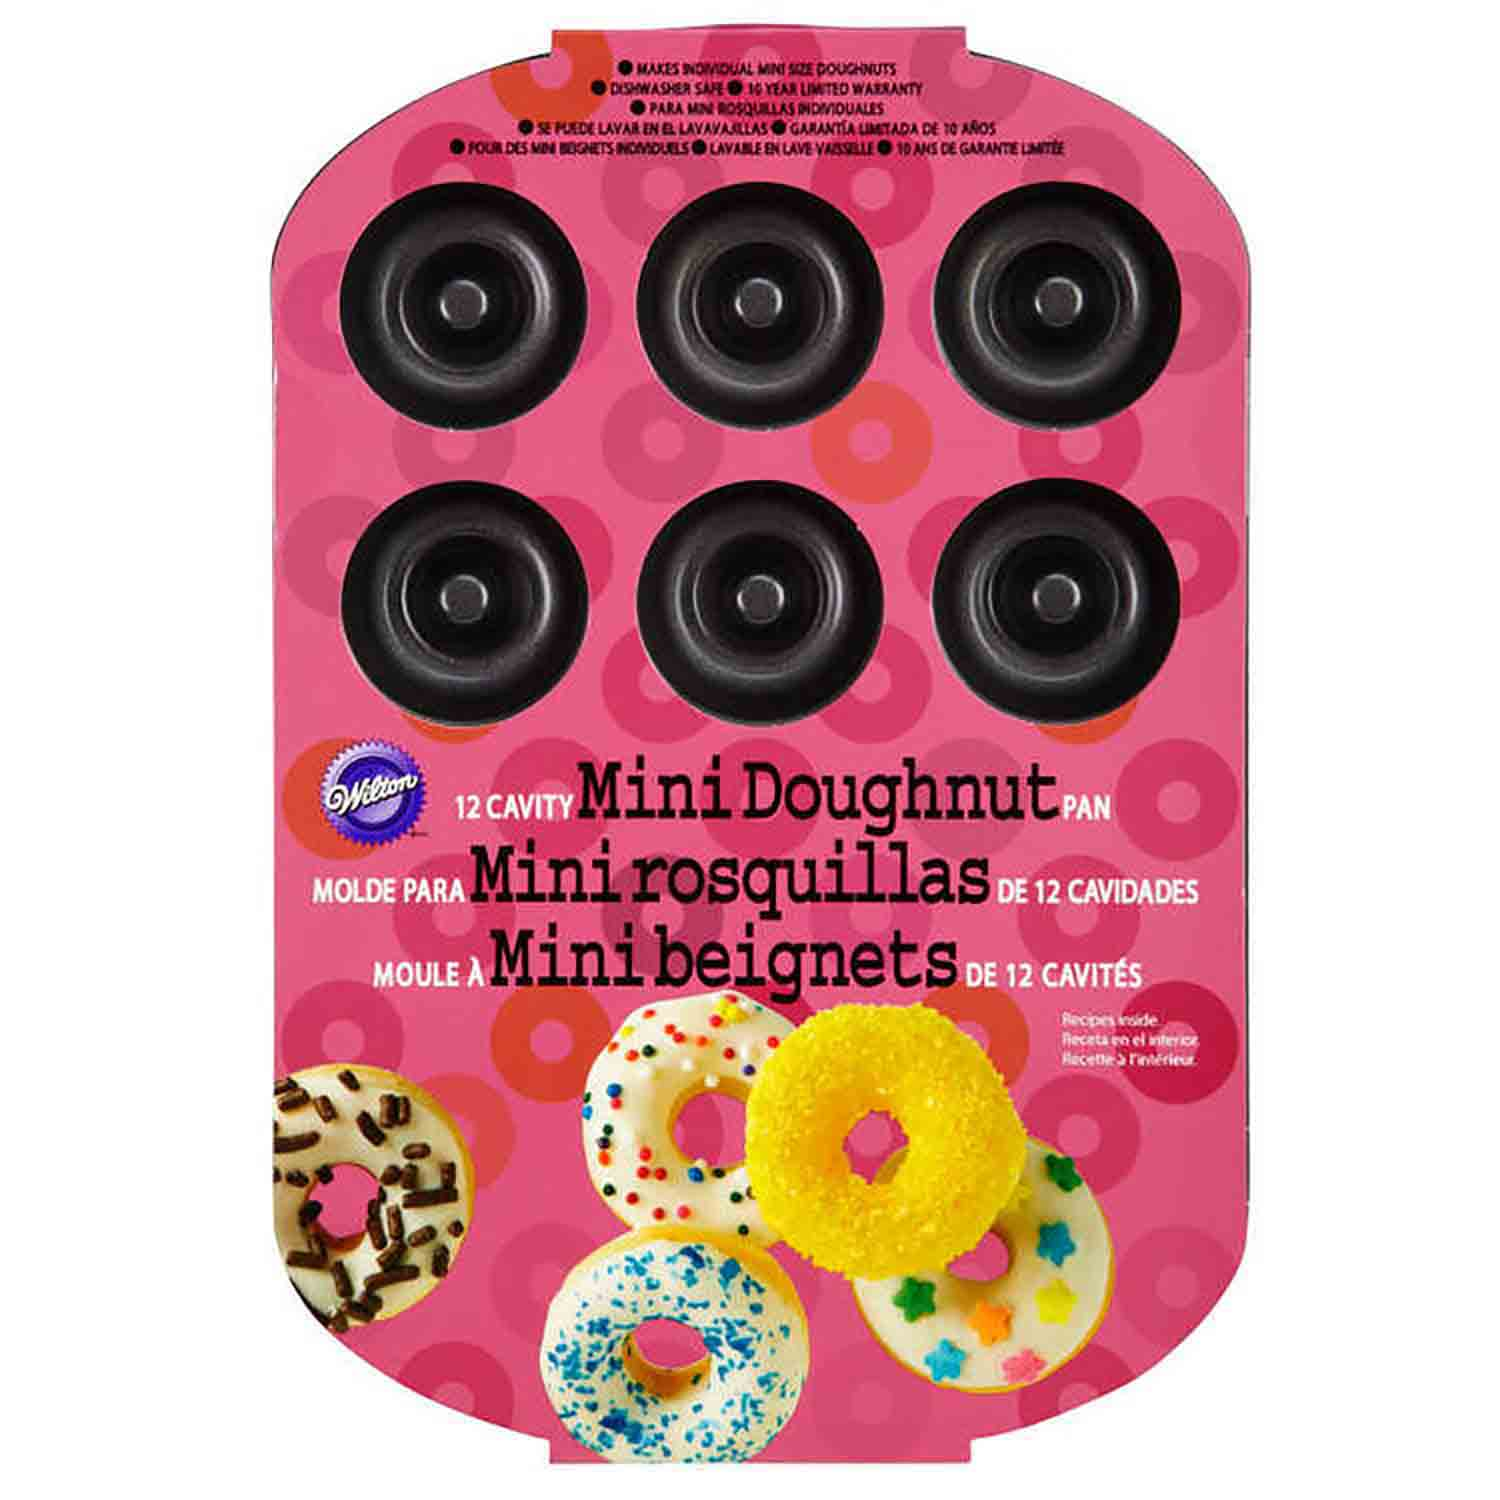 Mini Doughnut Pan